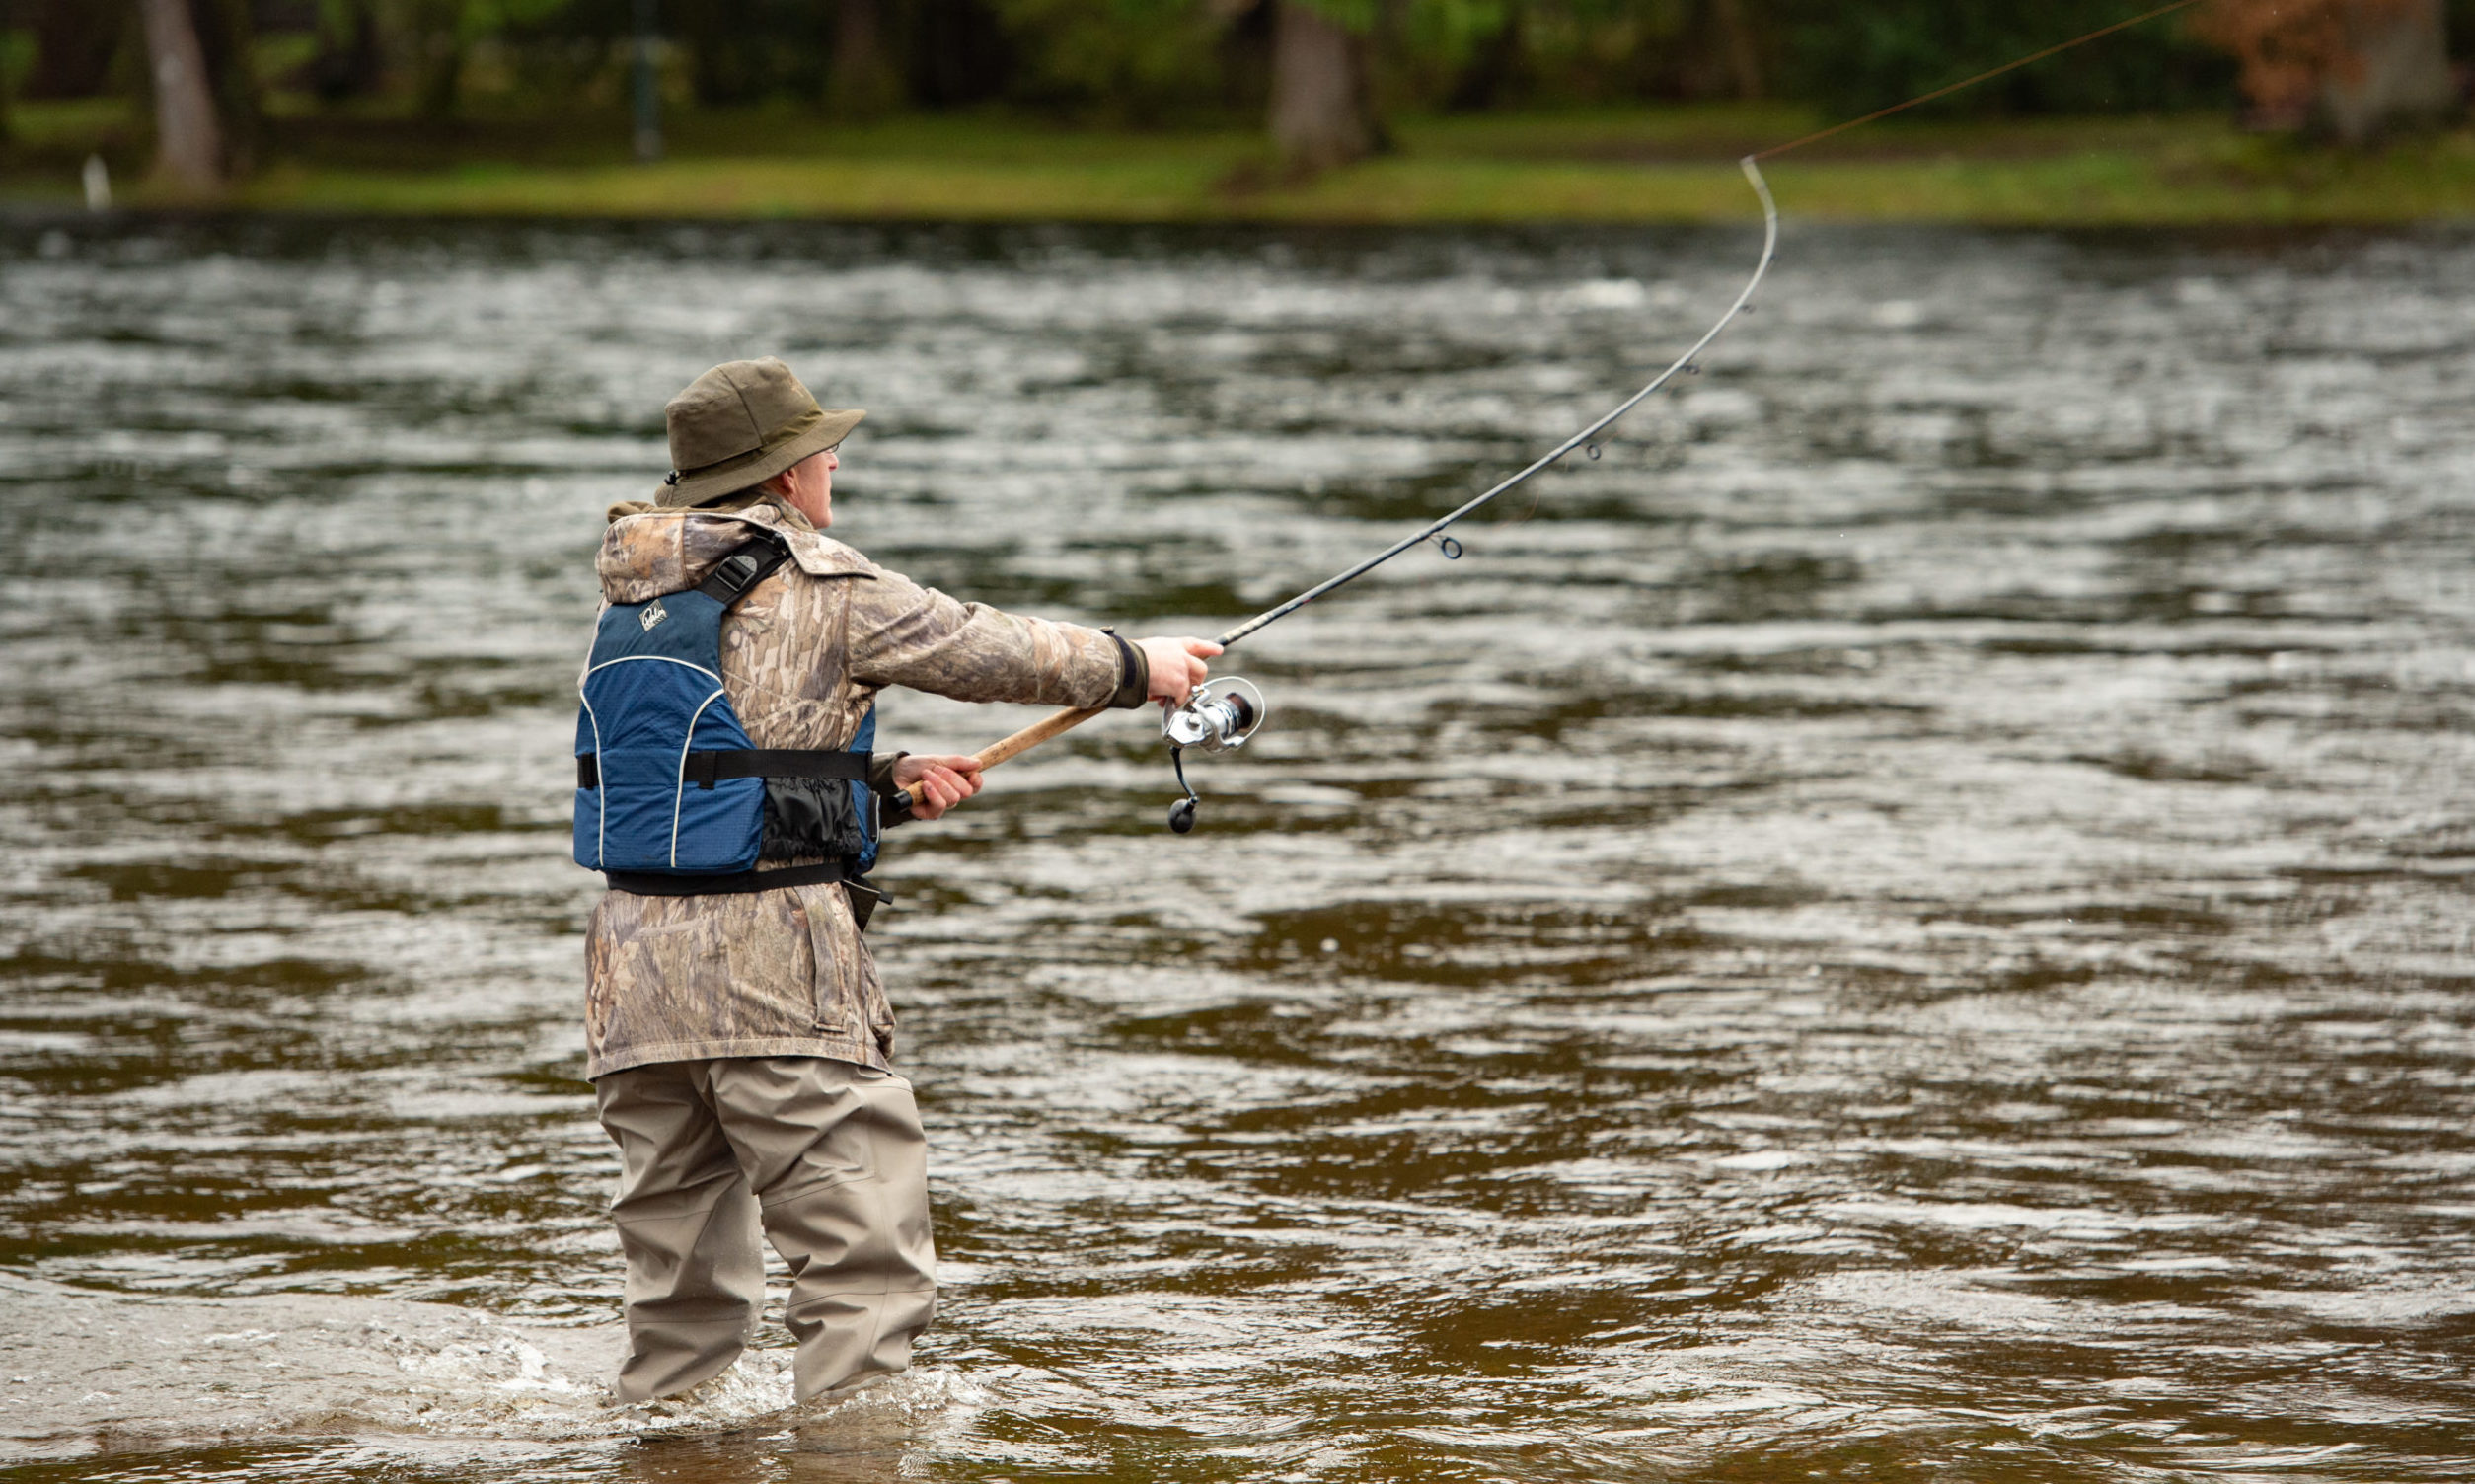 It is expected that angling will be permitted in Scotland from Friday